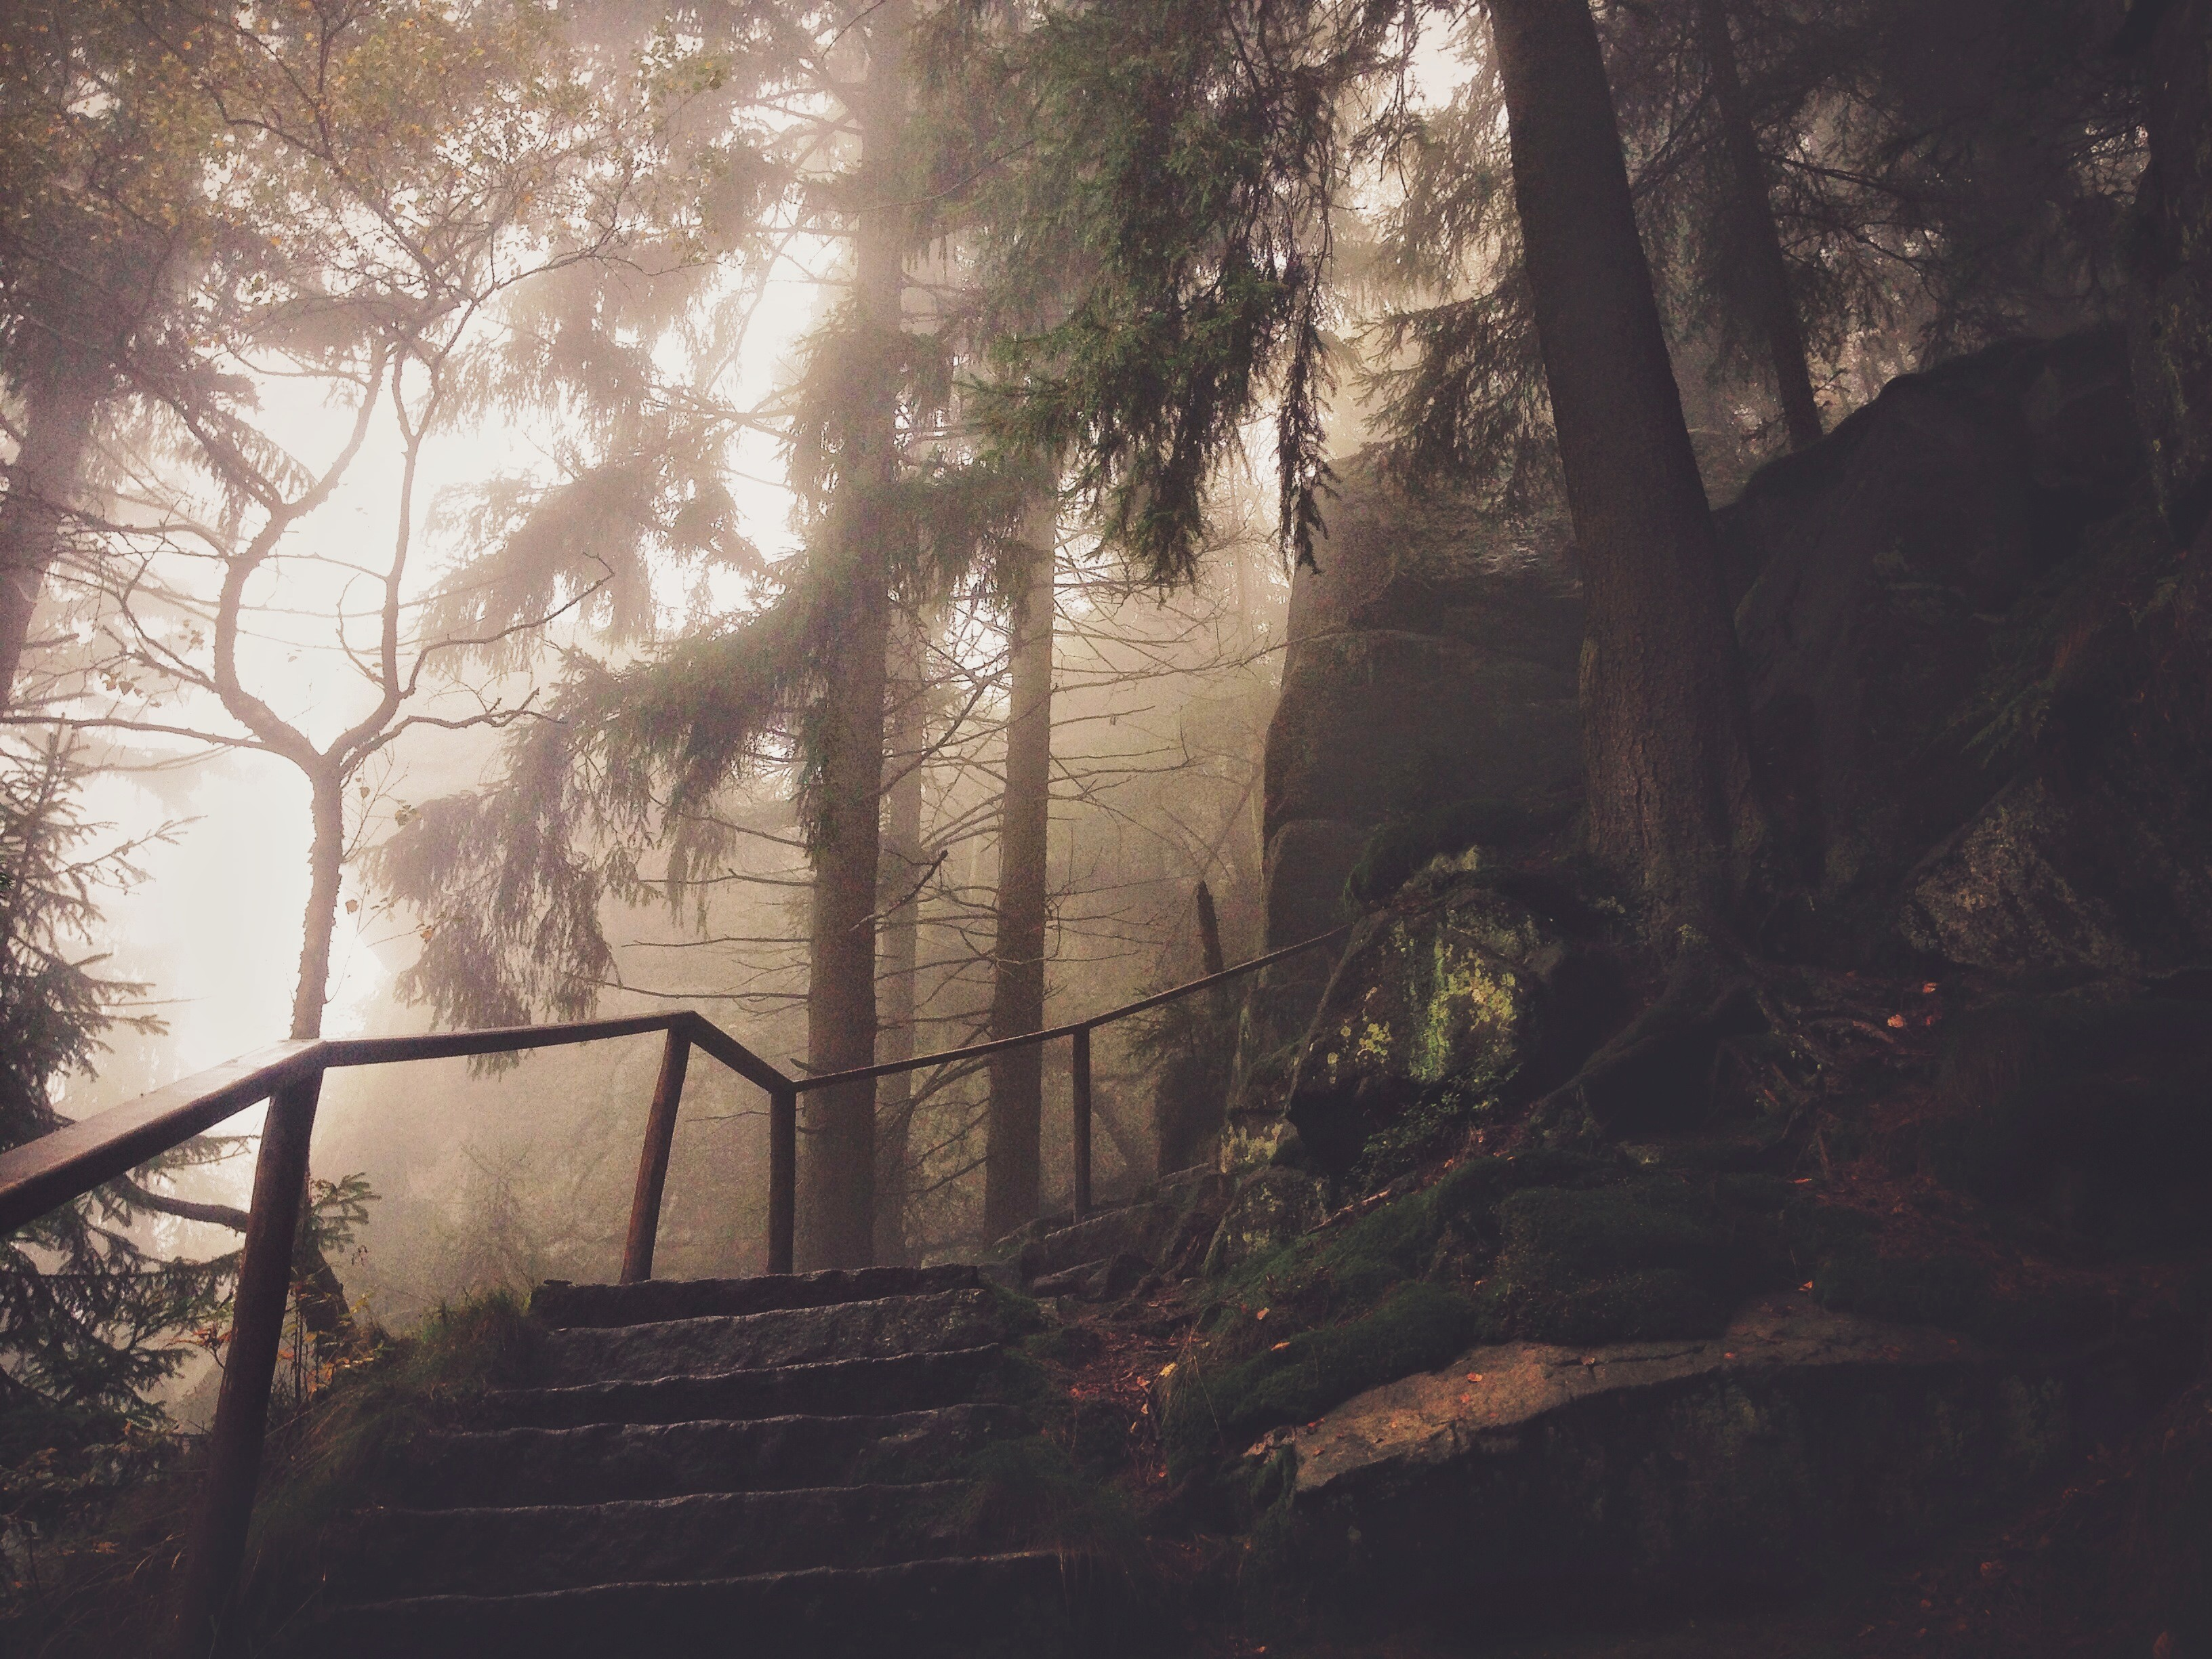 Steps and Rail in Hazy Park, Background, Fog, Forest, Haze, HQ Photo